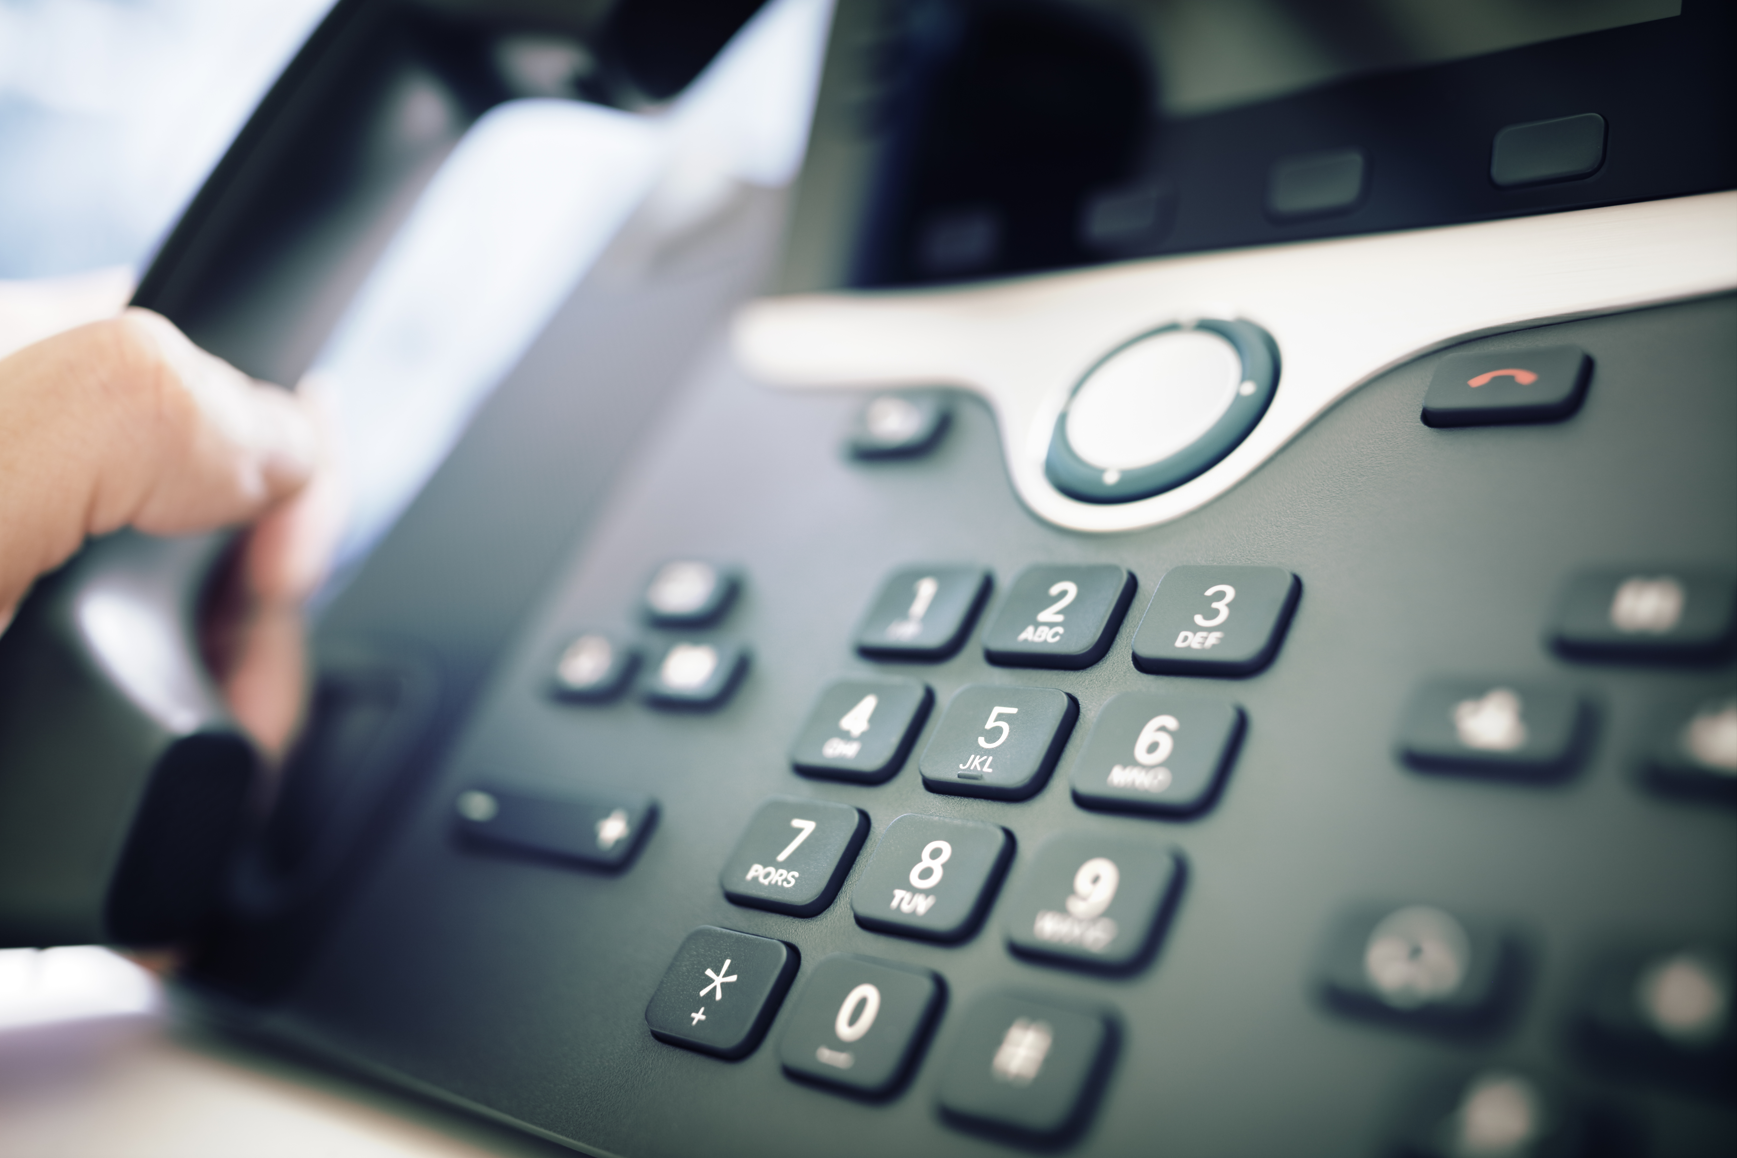 dialing-a-telephone-in-the-office-PWLAMGX